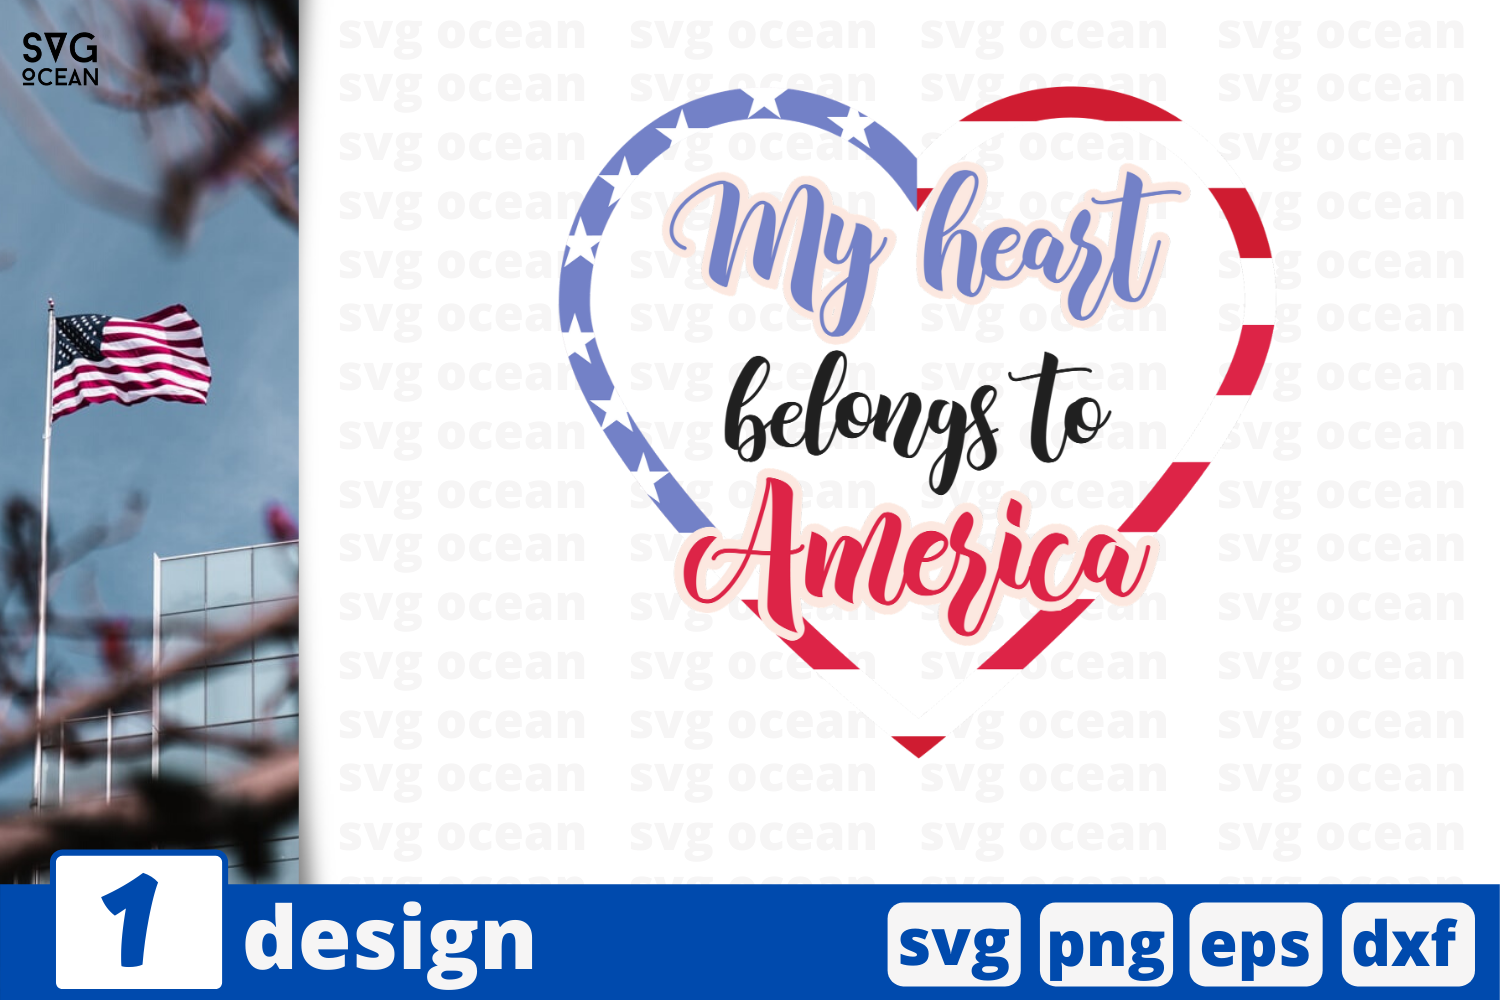 My Heart Belongs To America Graphic By Svgocean Creative Fabrica